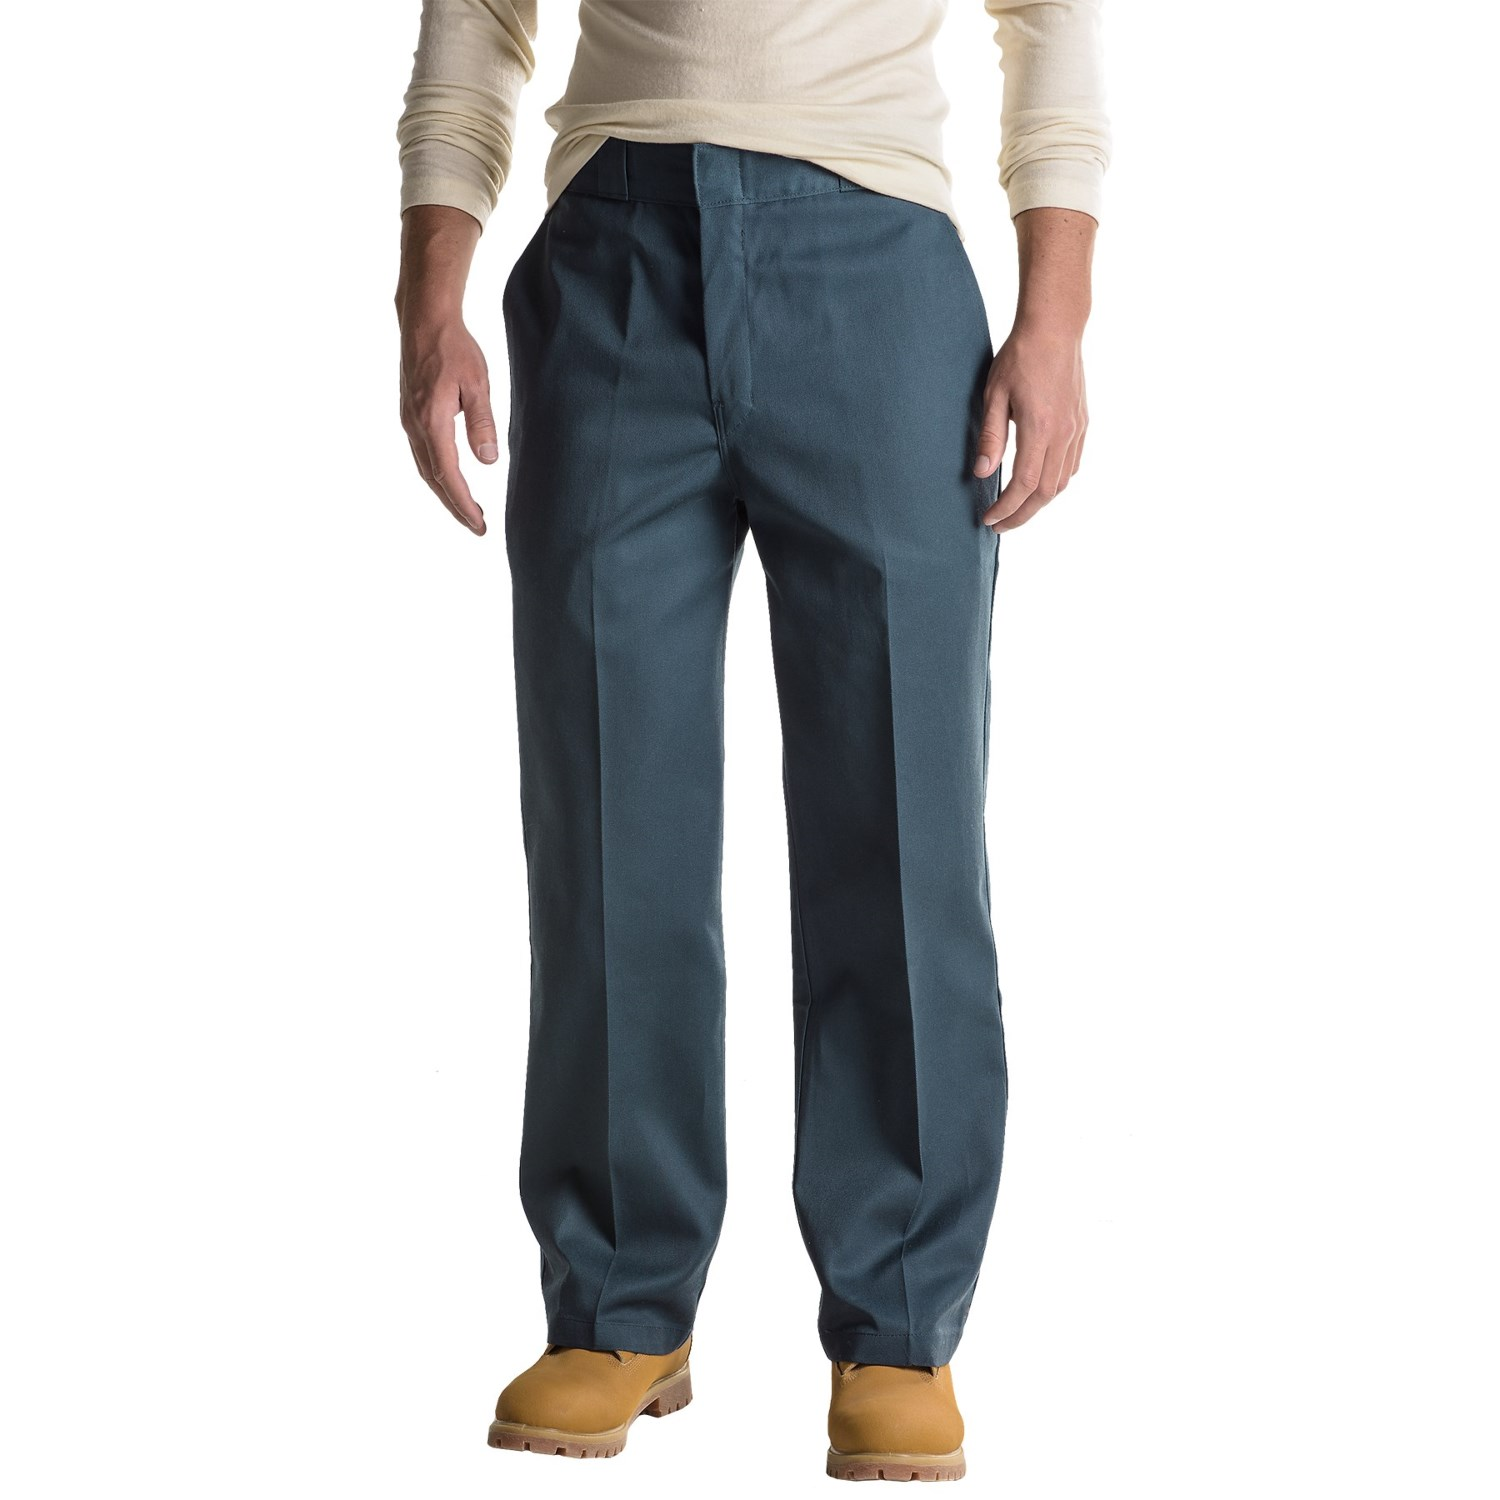 Wolverine Twill Work Pants (For Men) - Save 57%